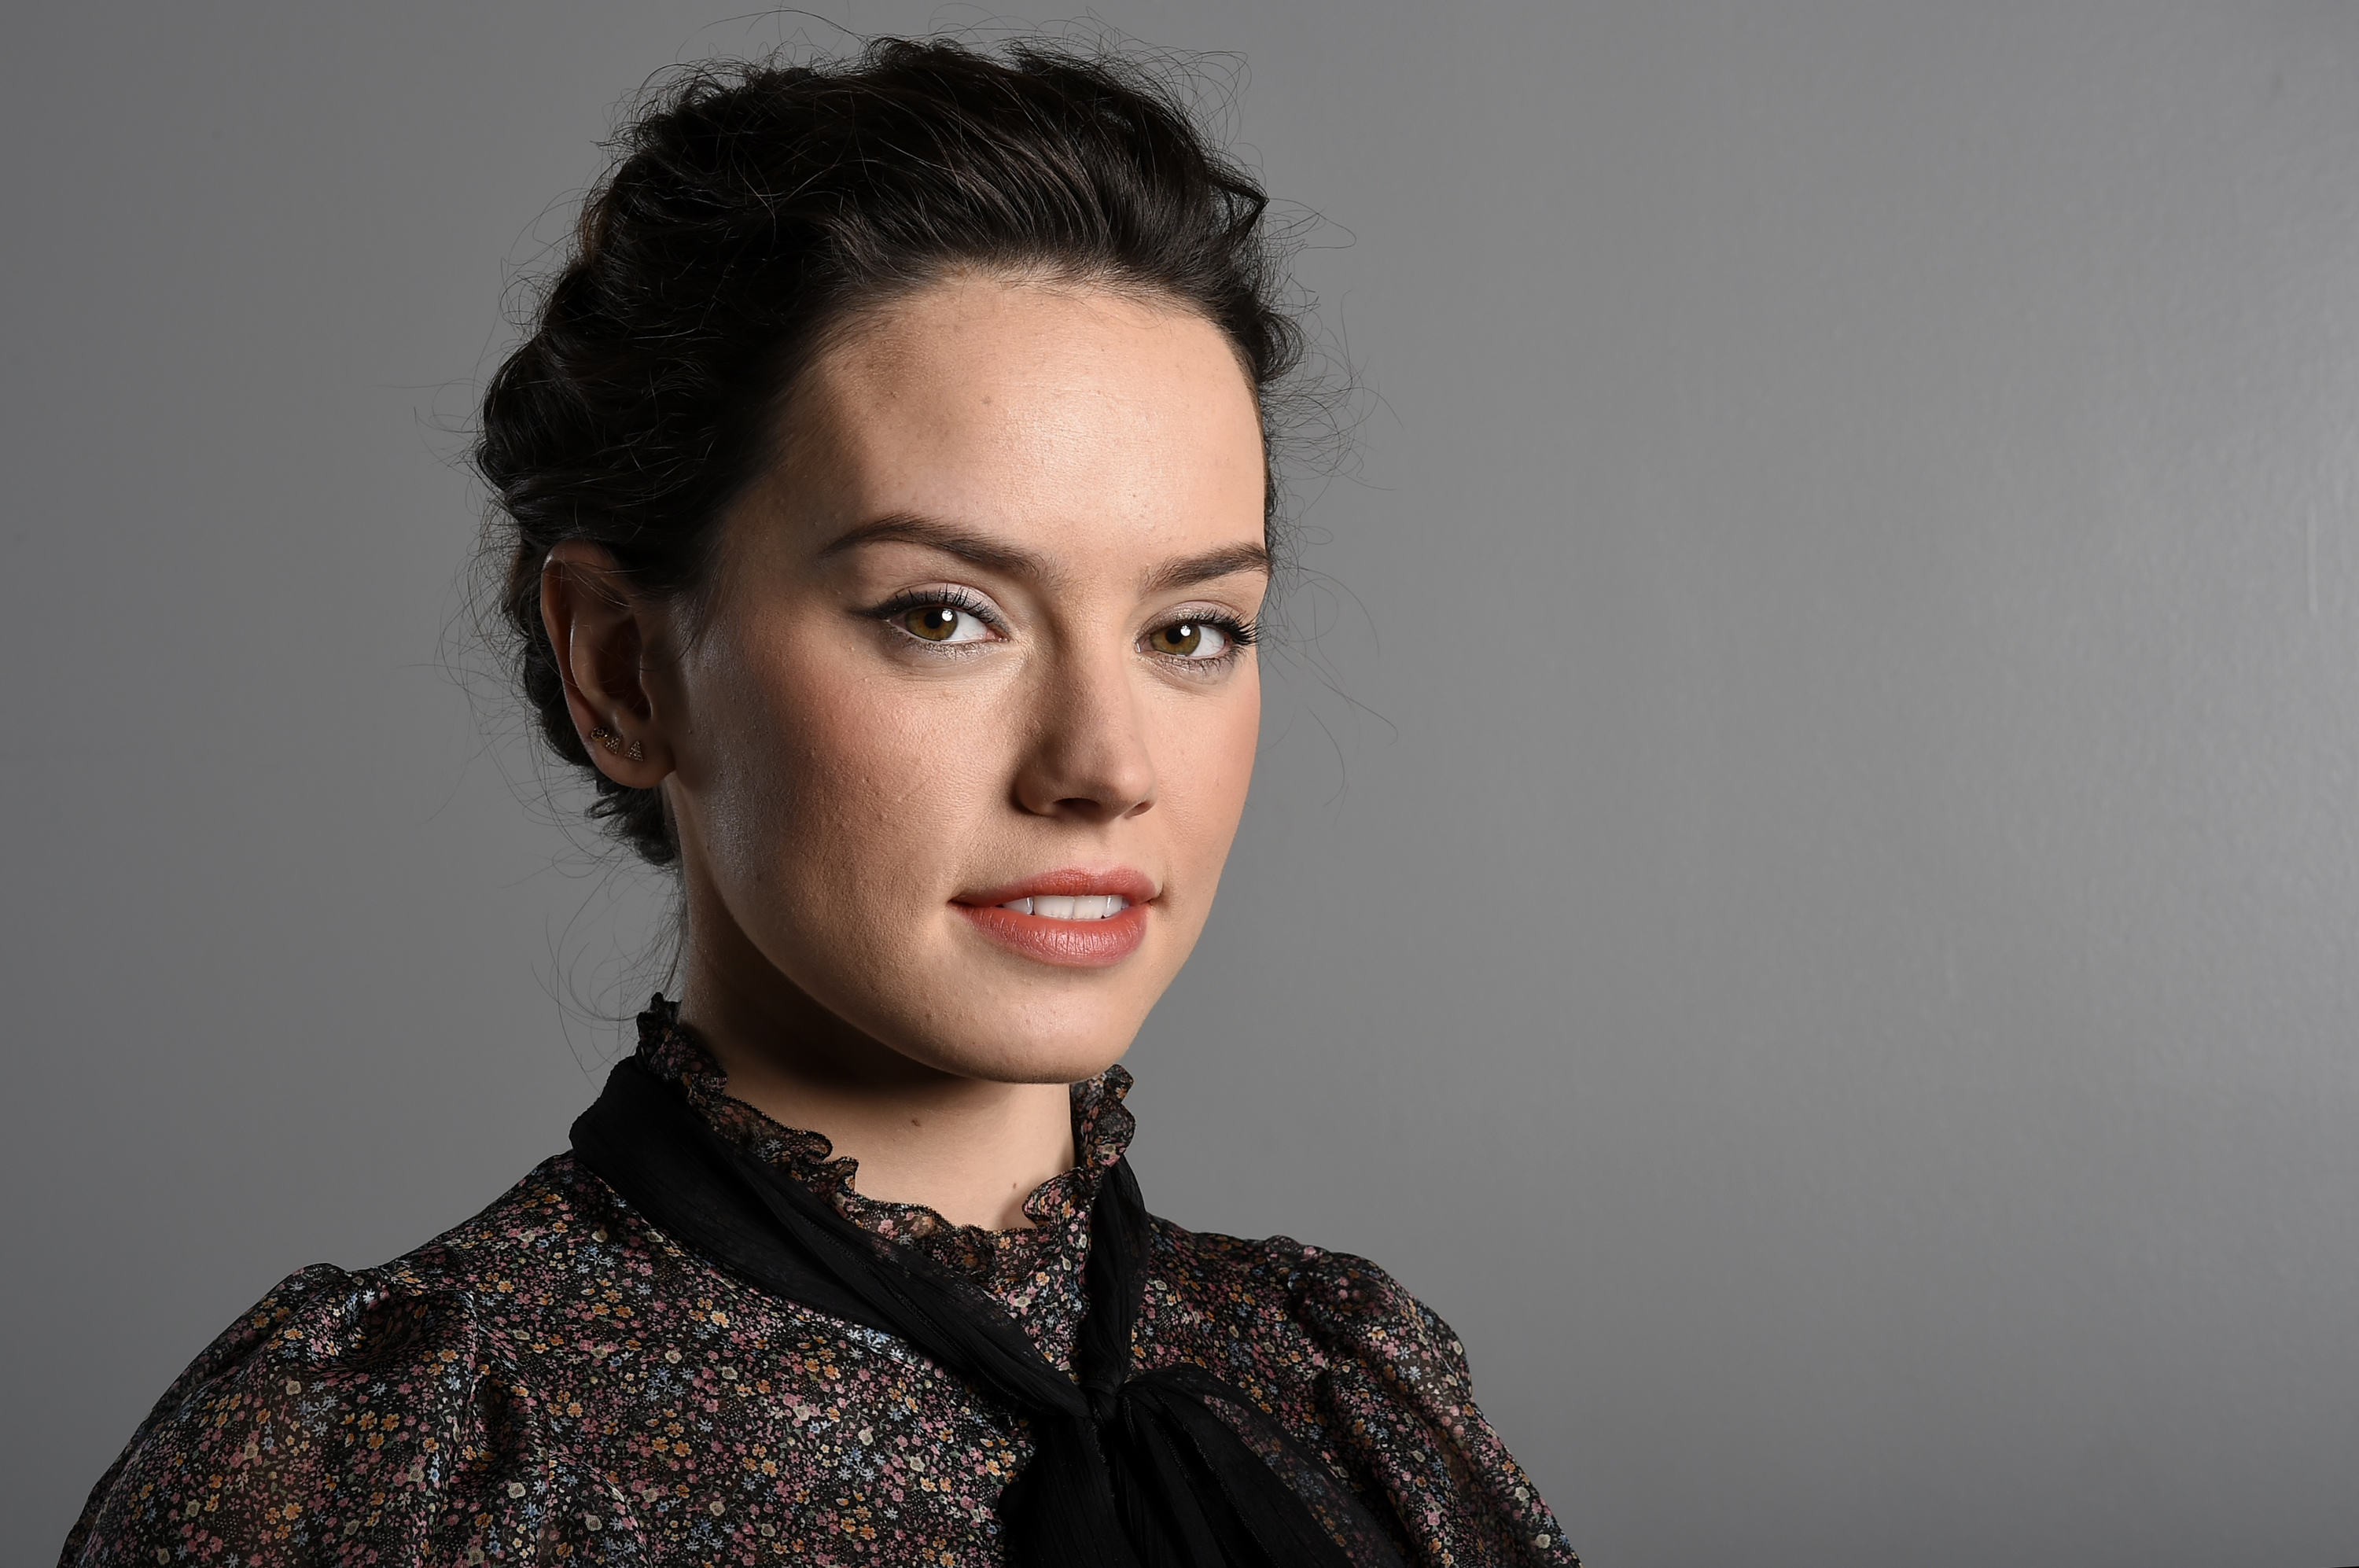 Daisy Ridley Wallpapers Pictures Images